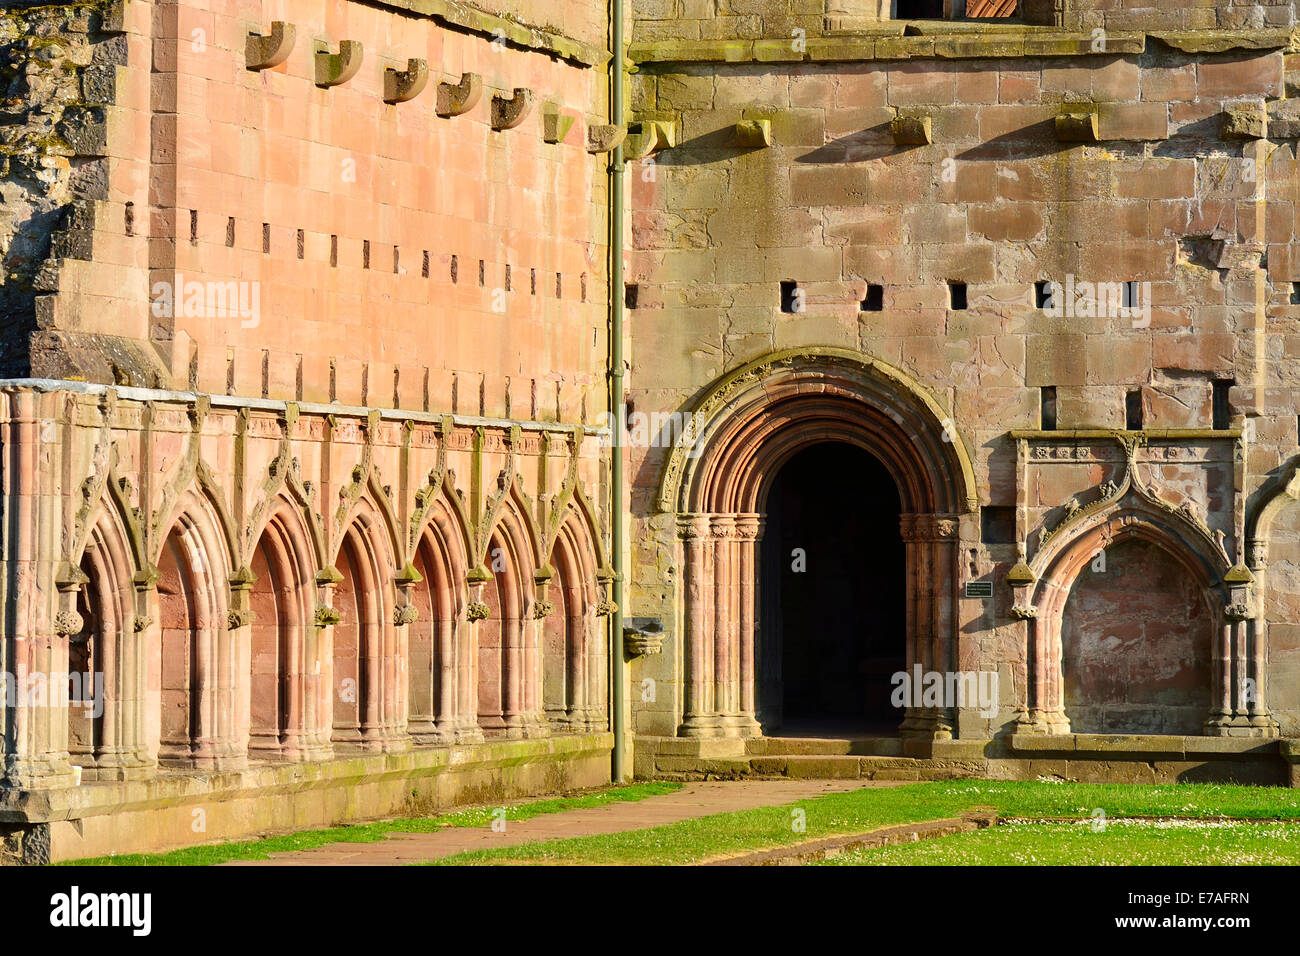 Ruins of the Cistercian monastery of Melrose Abbey, 12th century, Melrose, Scottish Borders, Scotland, United Kingdom - Stock Image